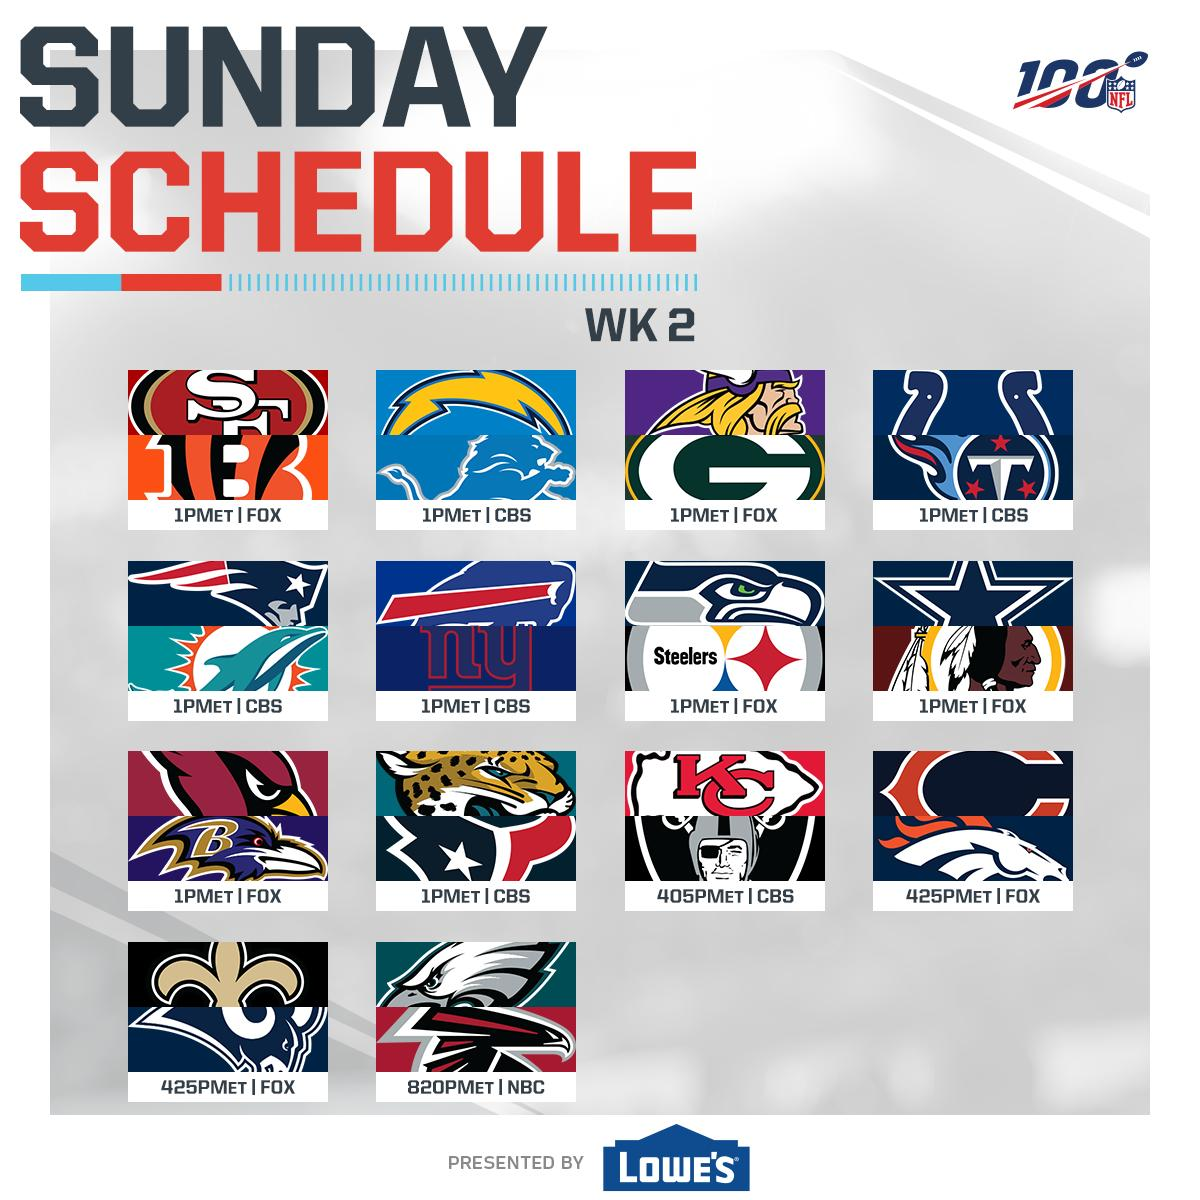 FULL slate of Week 2 football coming your way.   (by @Lowes)<br>http://pic.twitter.com/cgdOwEz6s9